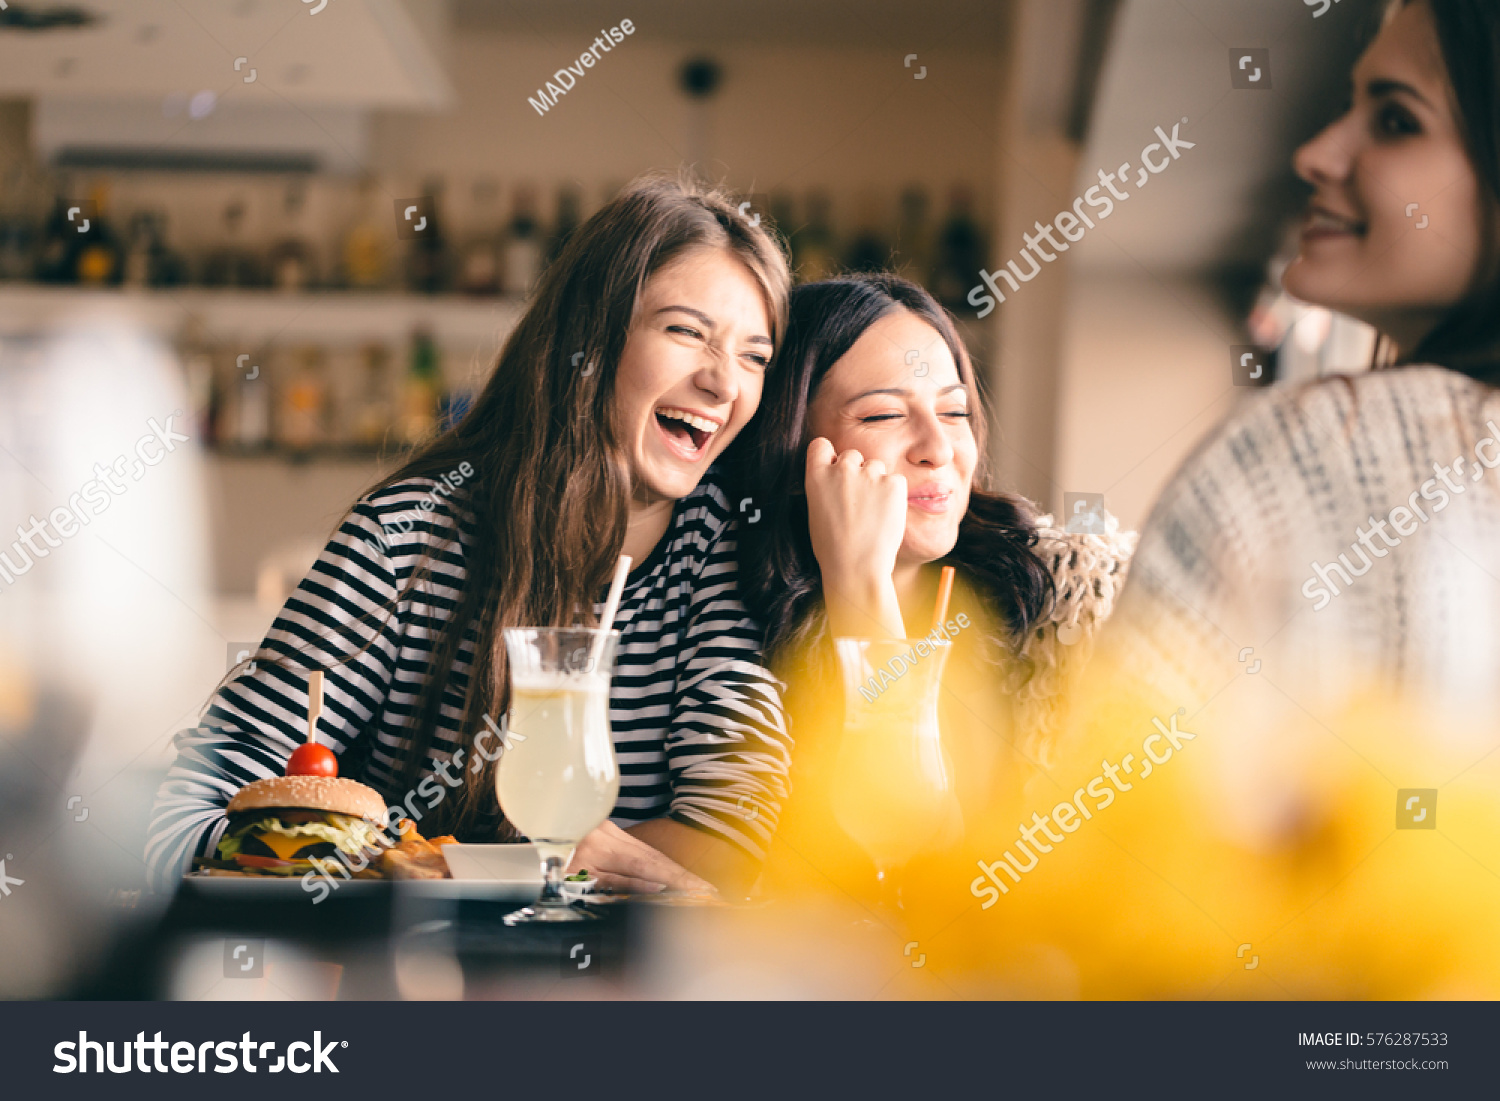 Old Friends Meeting After Long Time Stock Photo 576287533